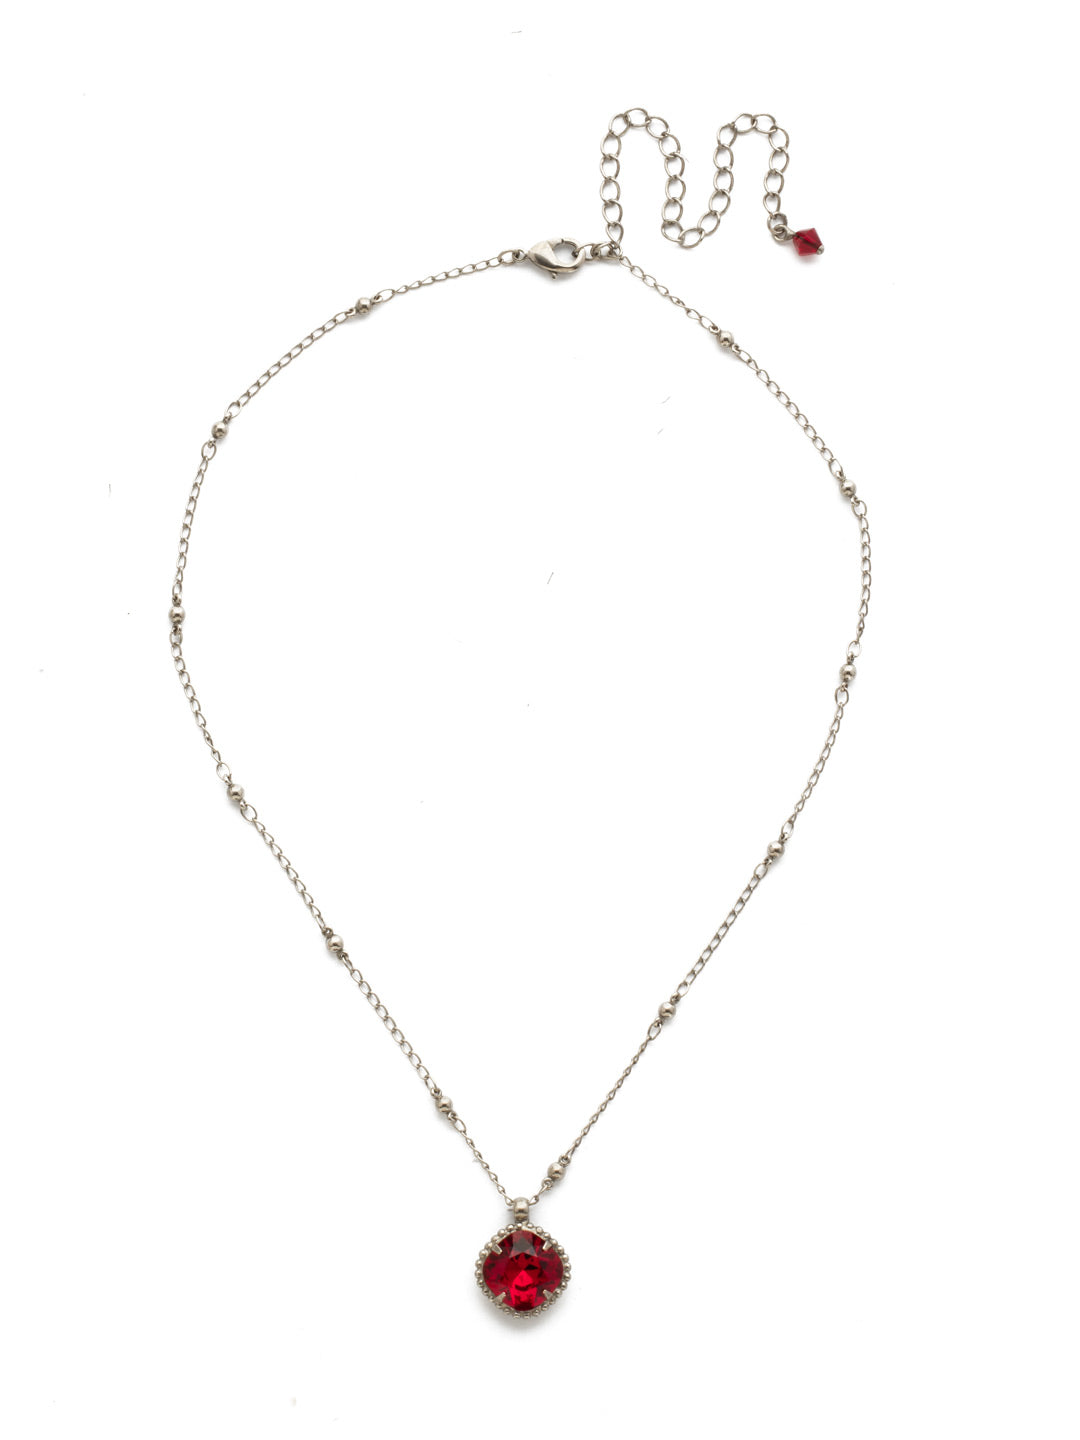 Cushion-Cut Pendant Necklace - NDS50ASSI